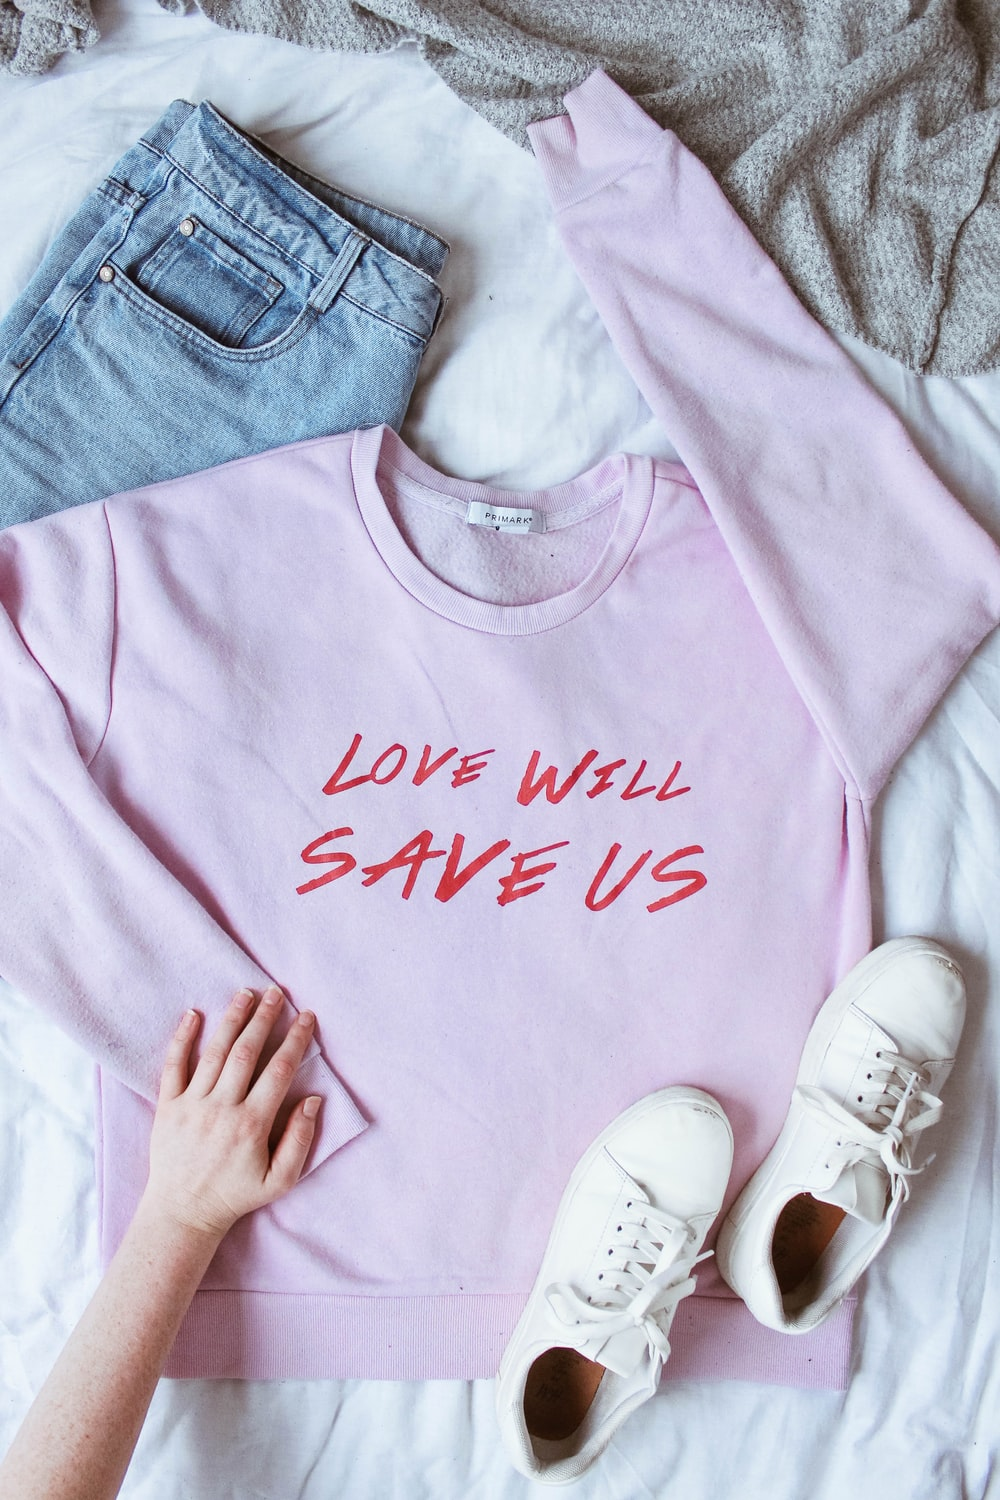 pink long-sleeved shirt on white textile near white low-top sneakers and blue denim bottoms